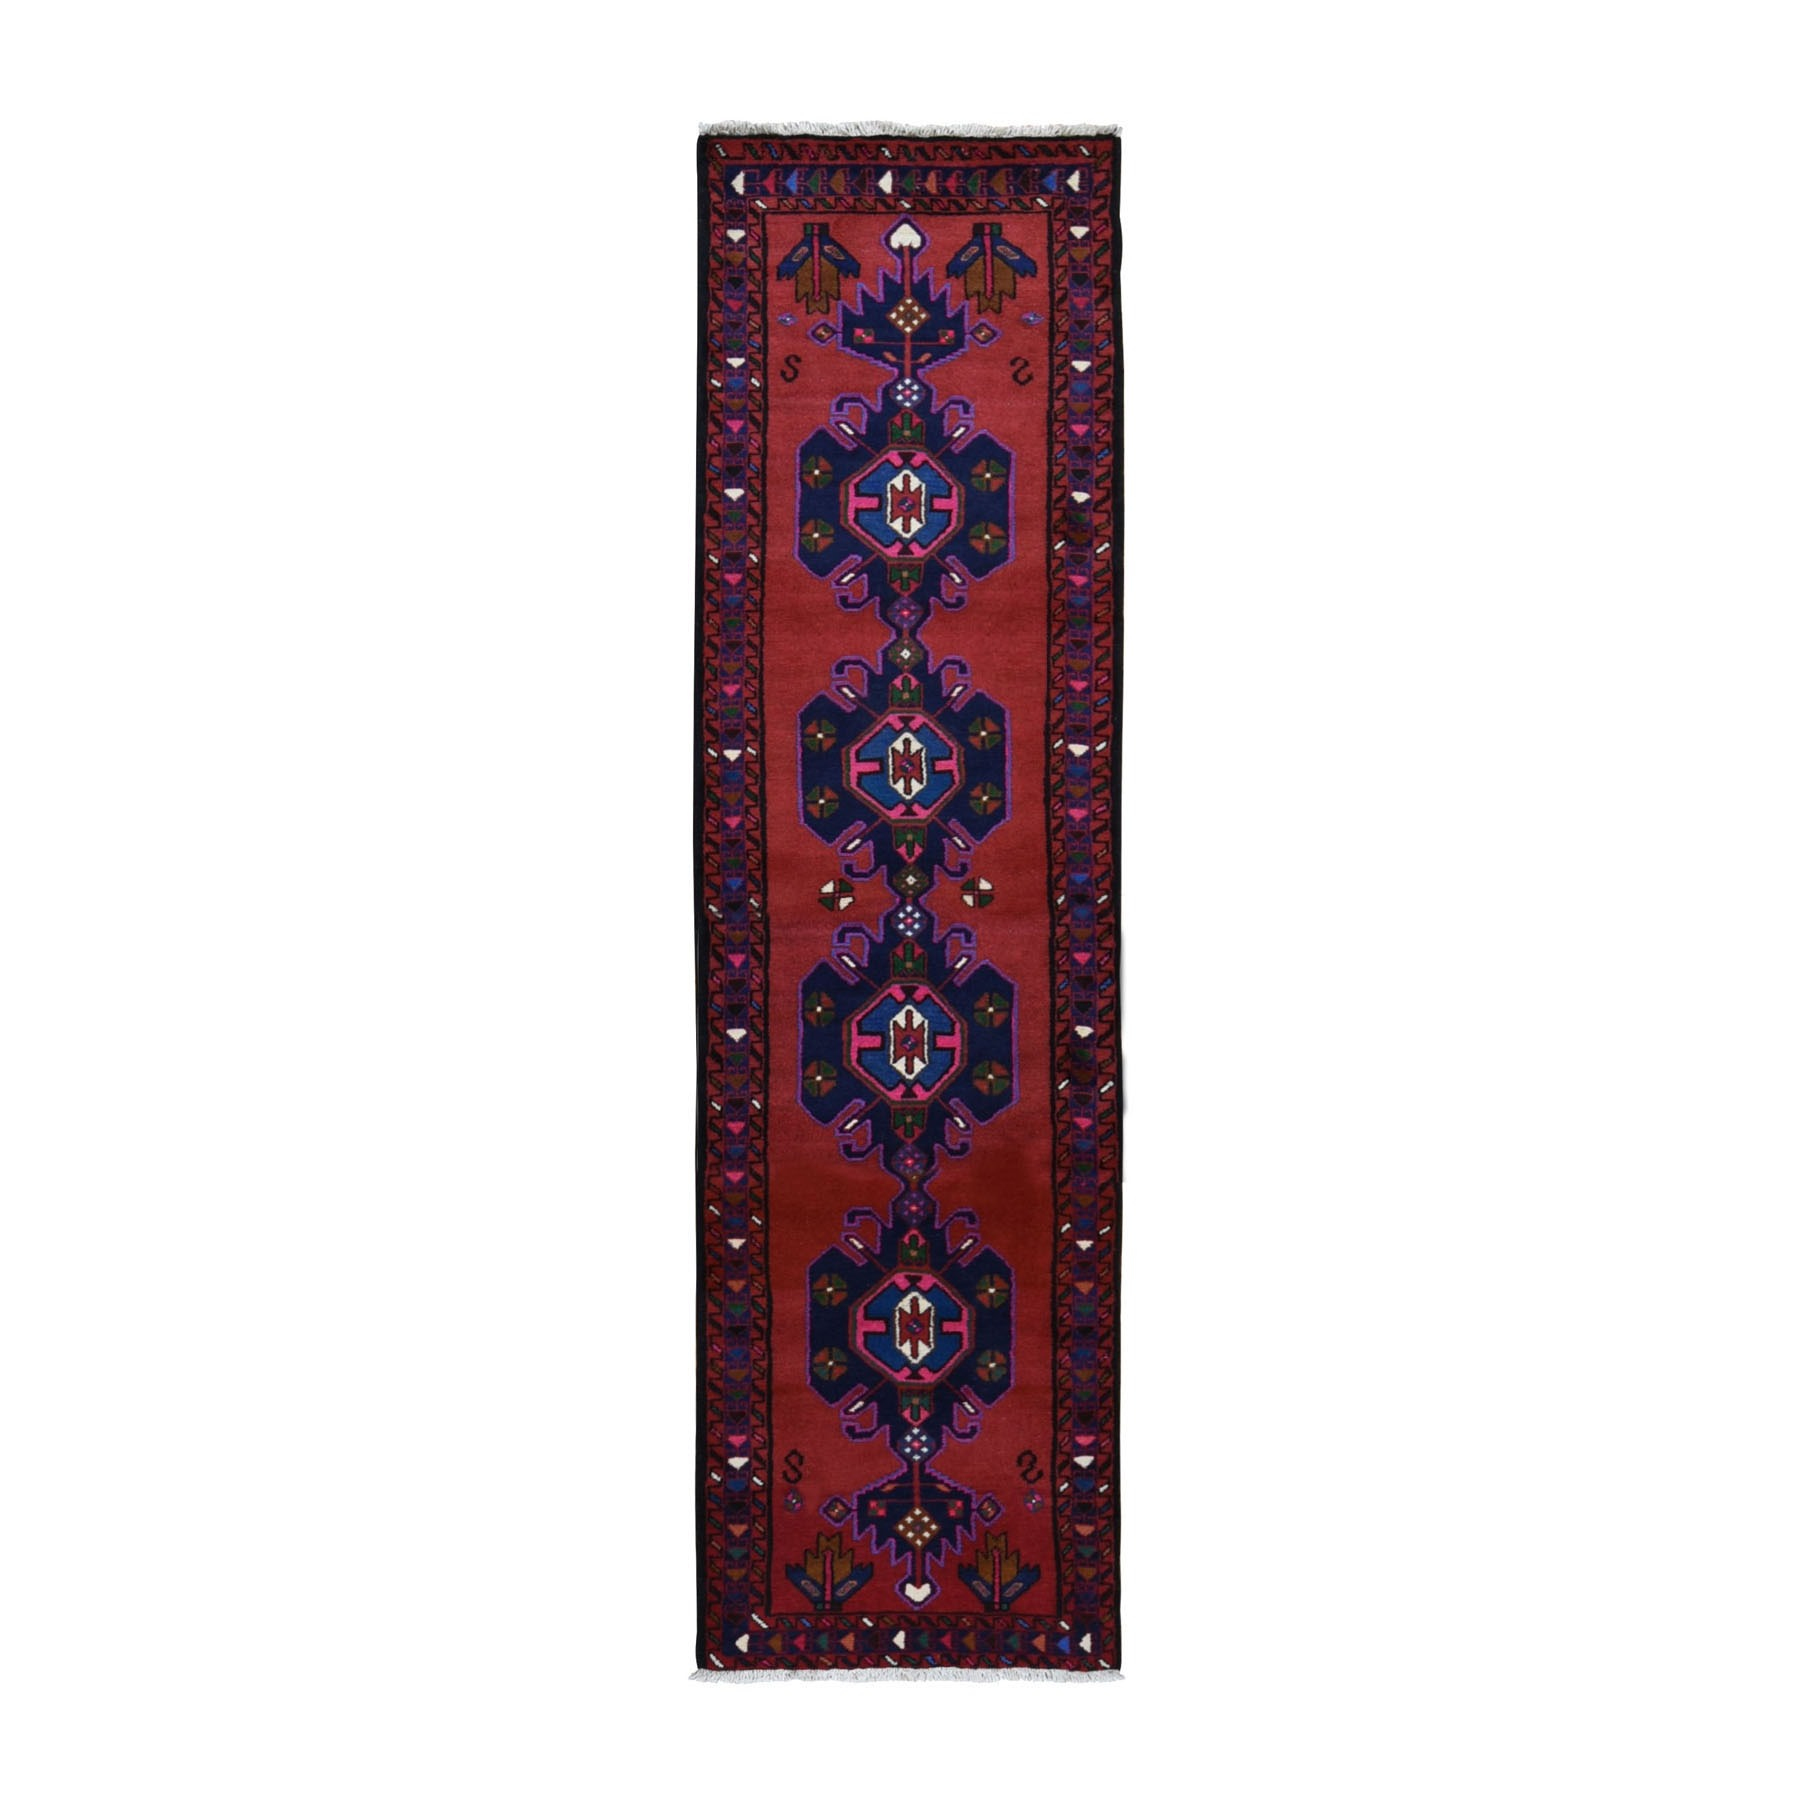 "2'4""x9'3"" Red New Persian Hamadan Pure Wool Repetitive Medallion Design Open Field Bohemian Runner Rug"